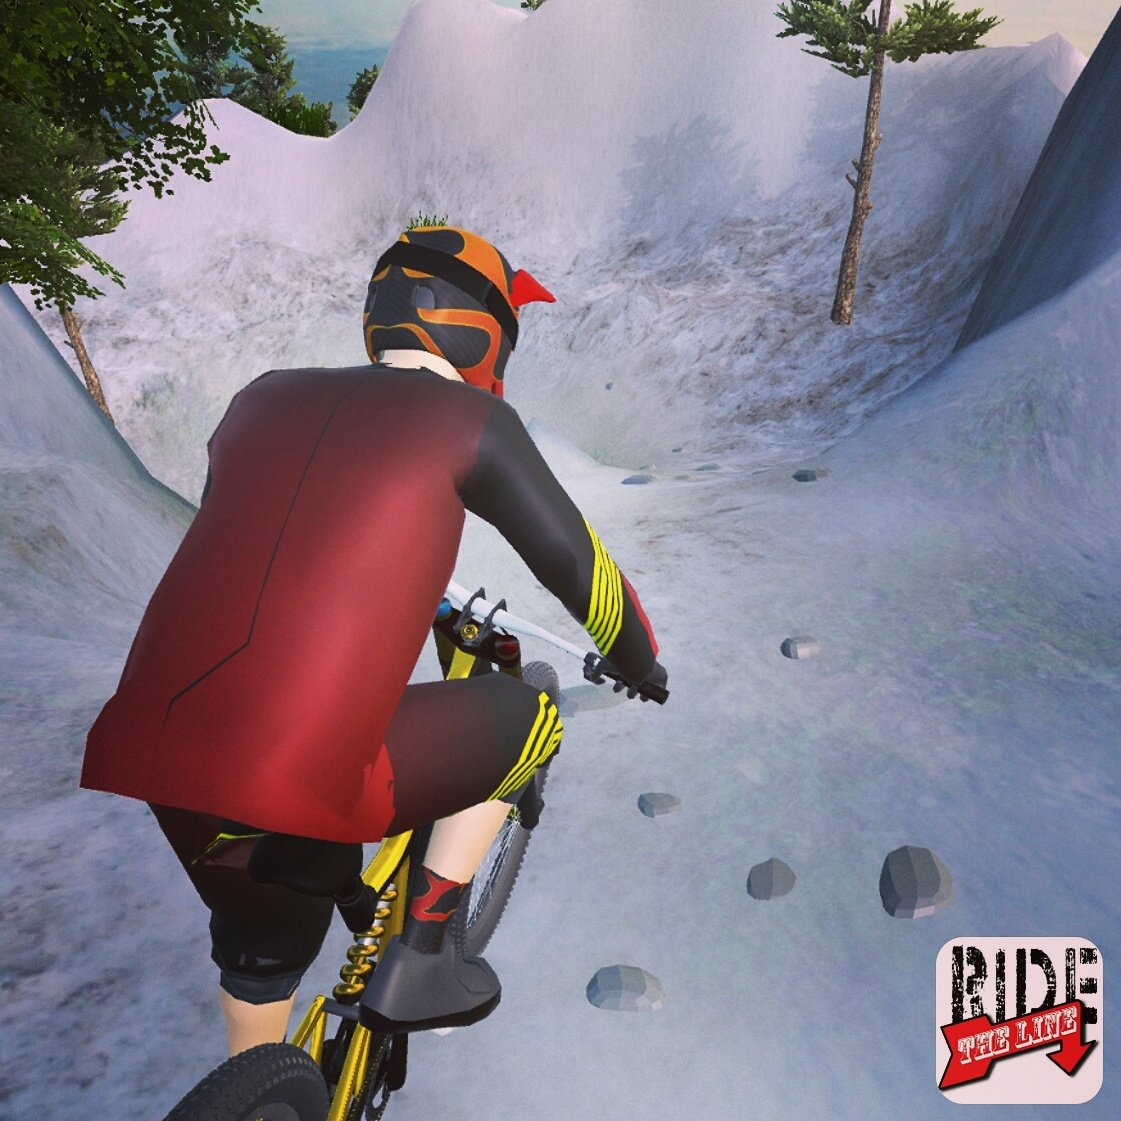 Another test run shot with the completed bike/rider rig.  #mtb #gamedev #indiedev #appdev #VR #startup #sport #health #science<br>http://pic.twitter.com/qvTvPCKYV0